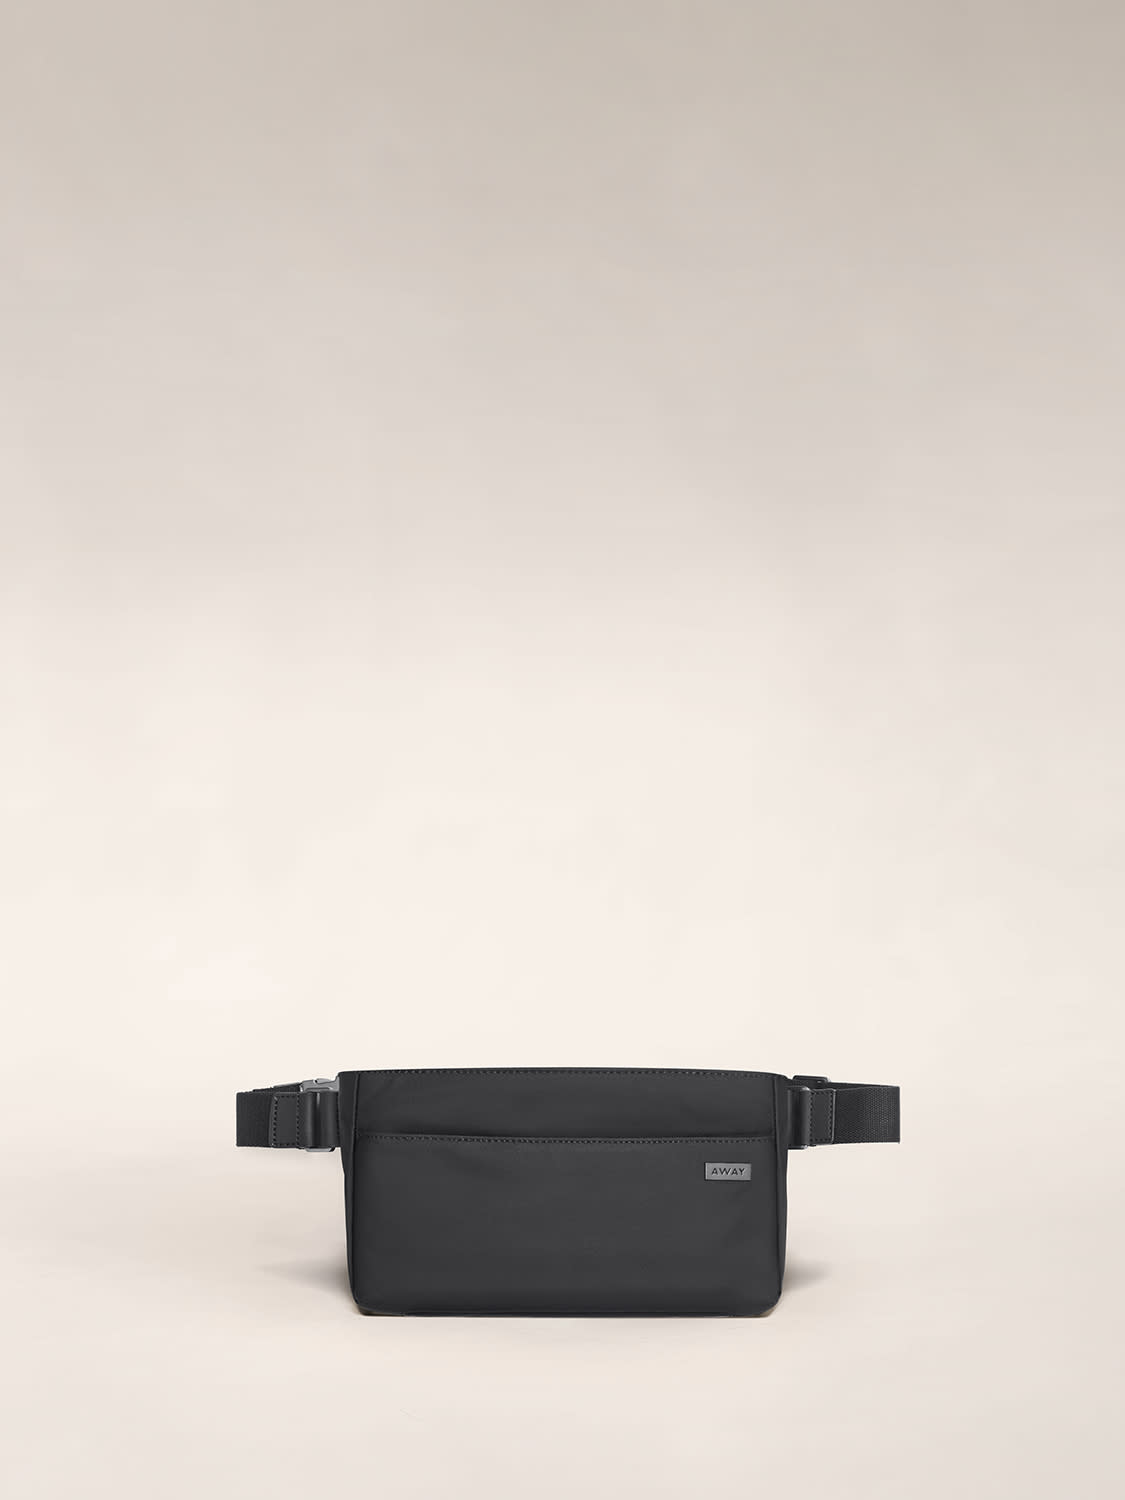 View of the front pocket of the Away sling bag in black nylon